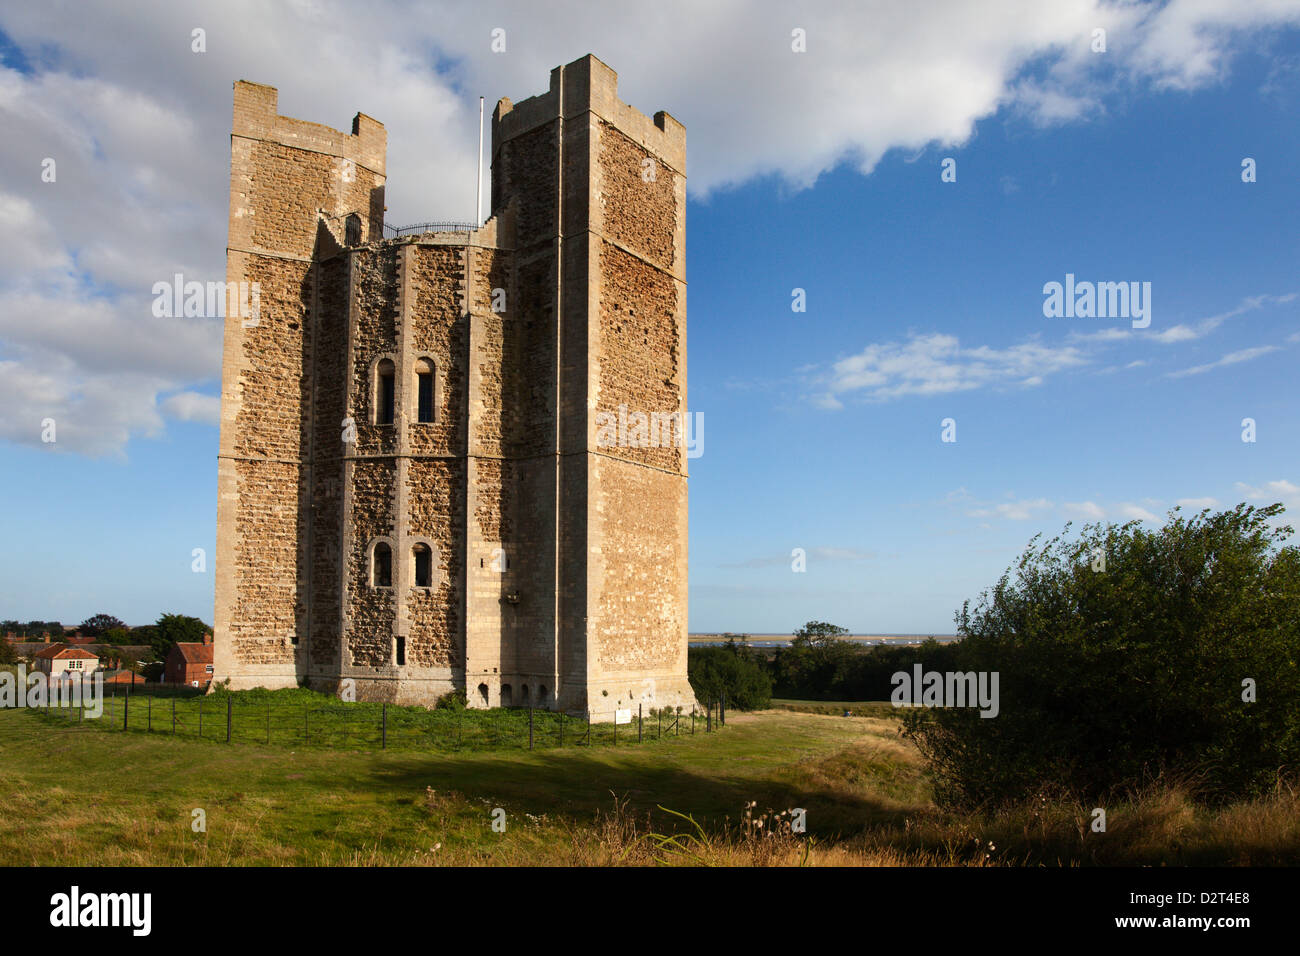 The remarkably intact Keep at Orford Castle, Orford, Suffolk, England, United Kingdom, Europe - Stock Image